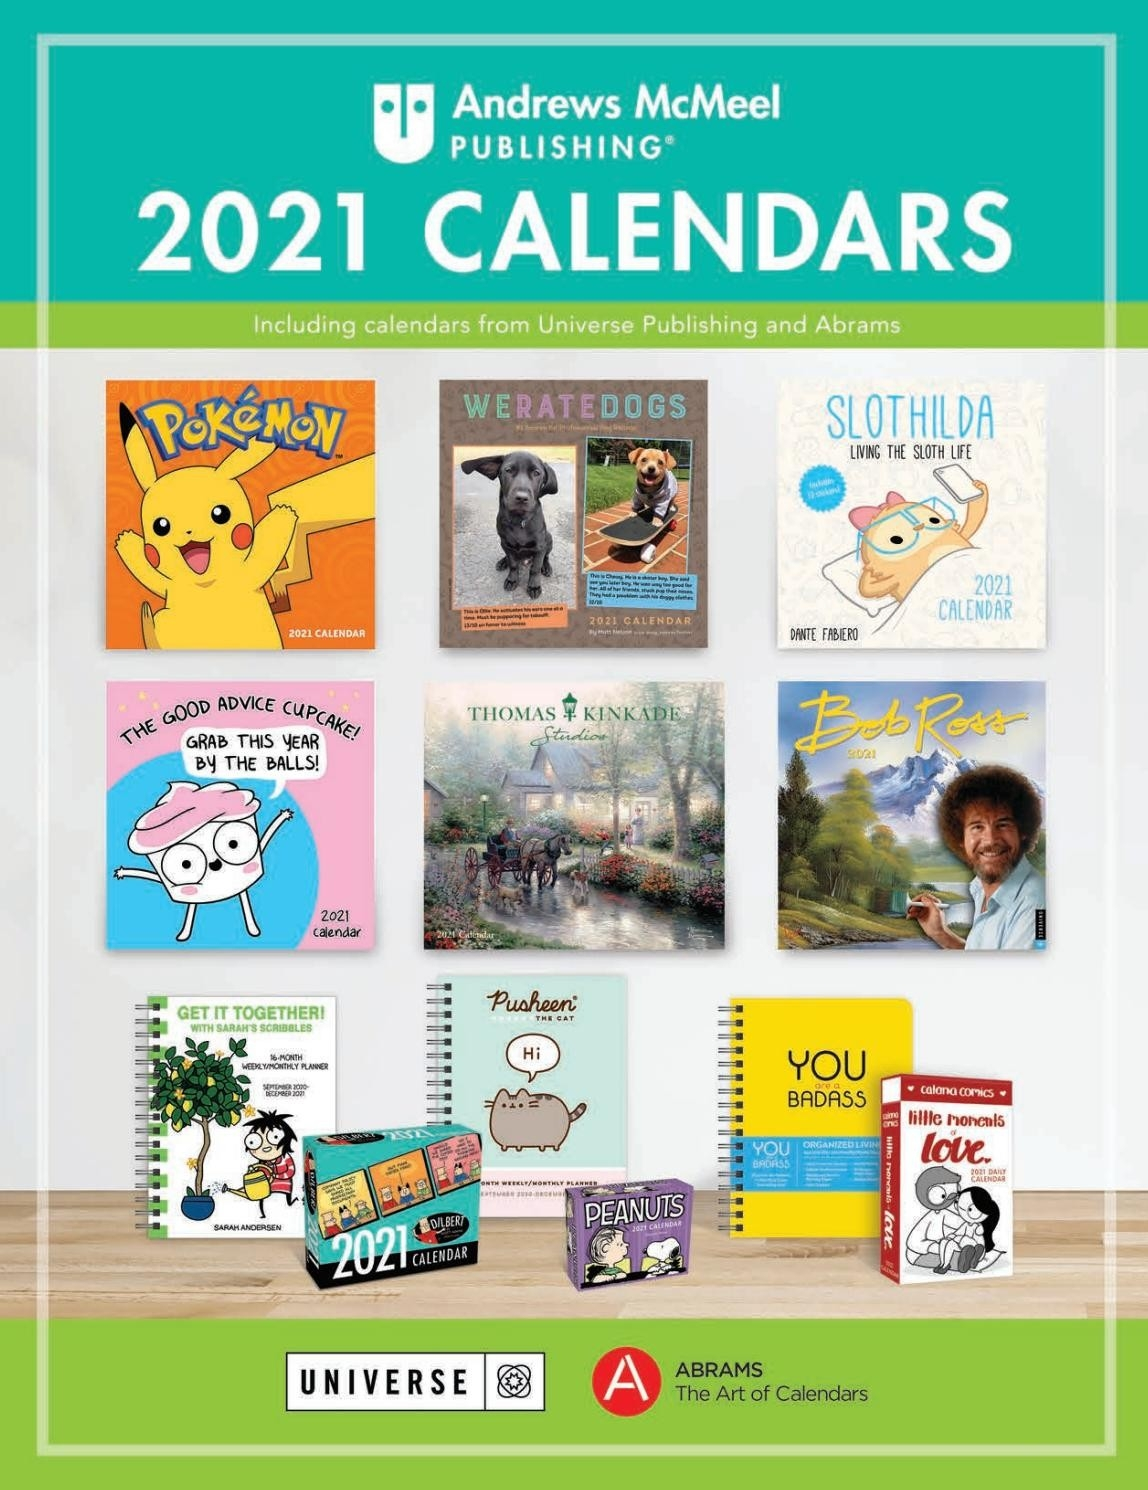 Andrews Mcmeel 2021 Calendar Catalogandrews Mcmeel  How Many Fortnights In The 2021 O 2021 Financial Year In Australia